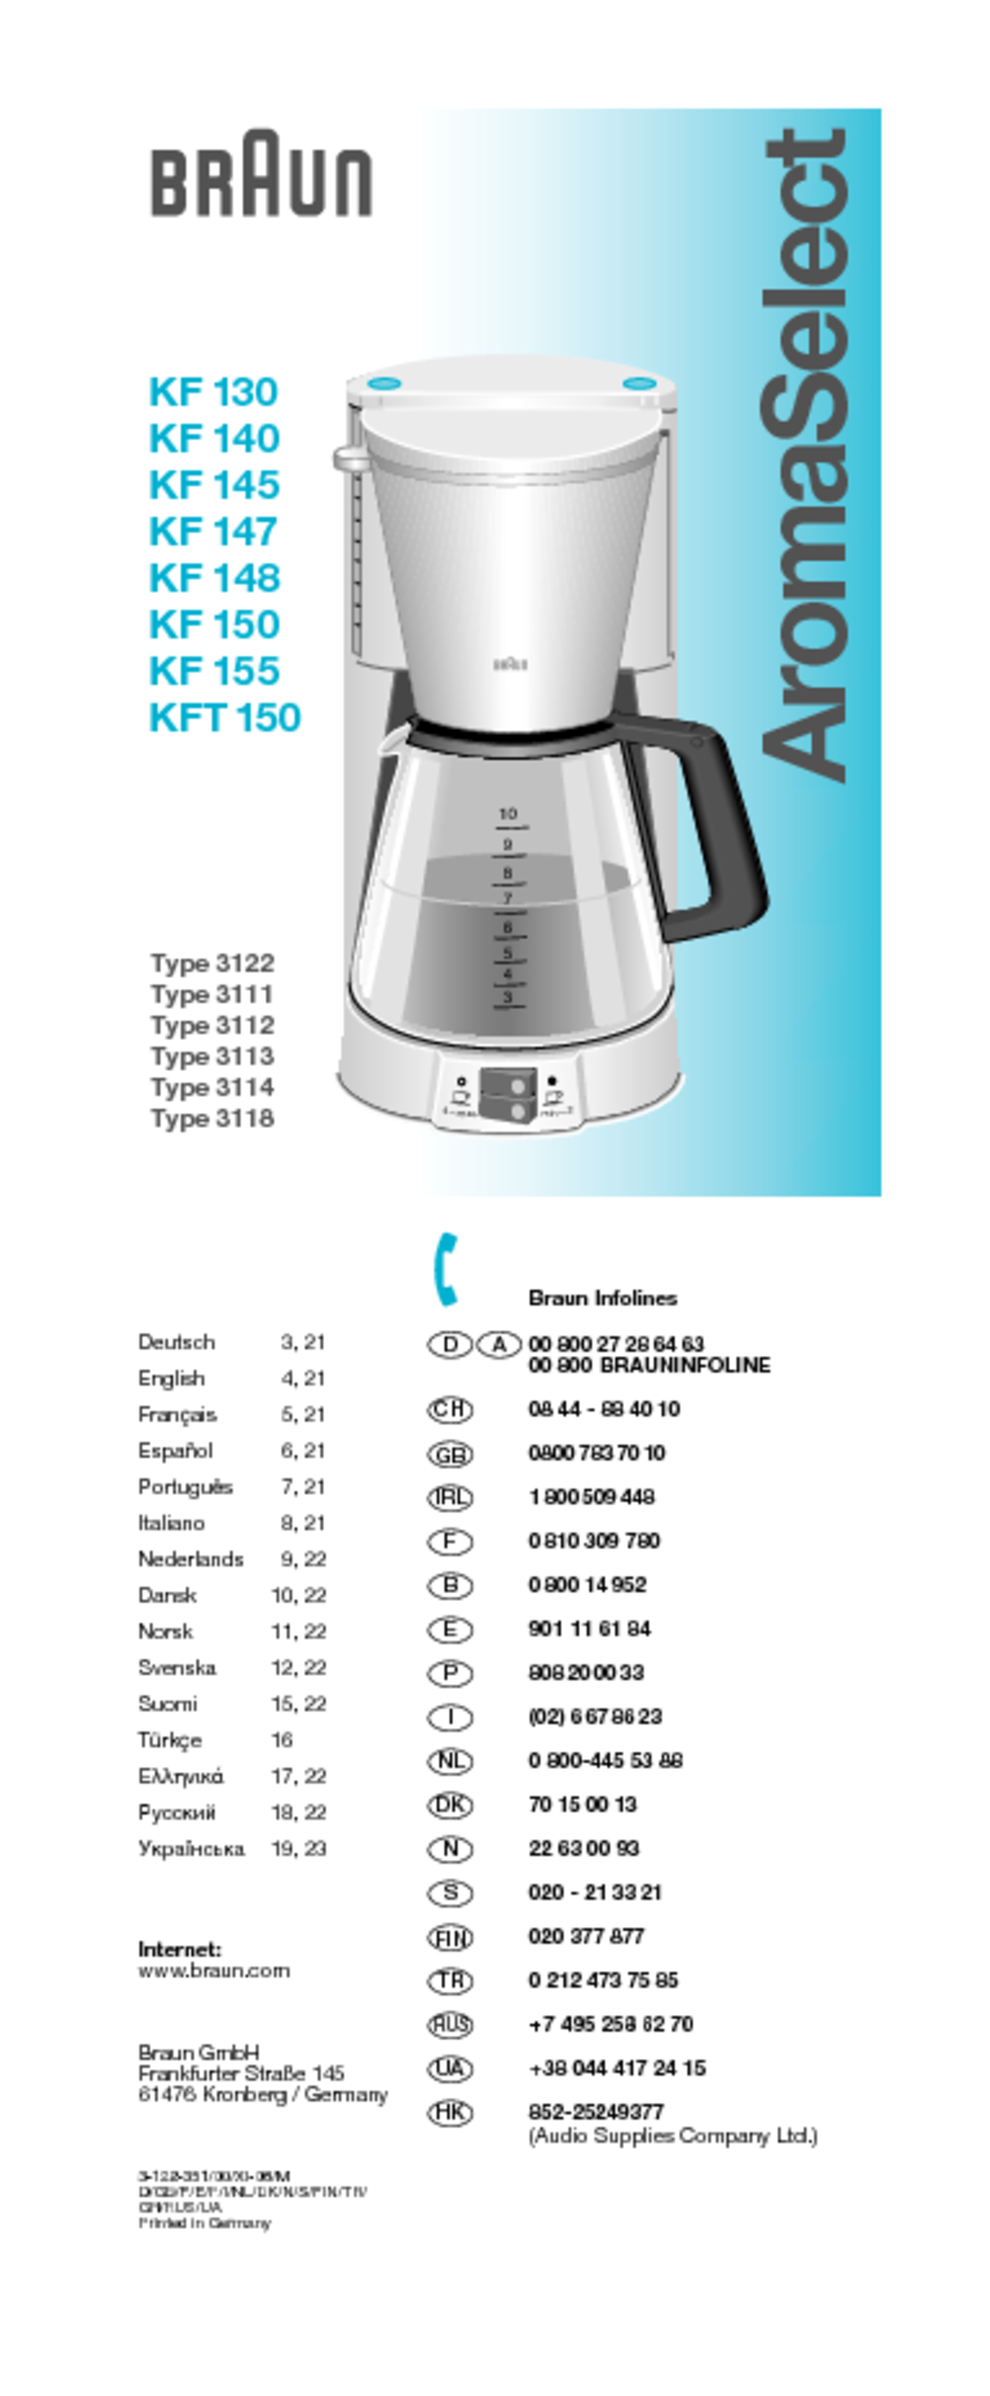 Braun Coffee Maker Repair Guide : Download Braun 3106 Coffee Maker Manual - masterwebsites